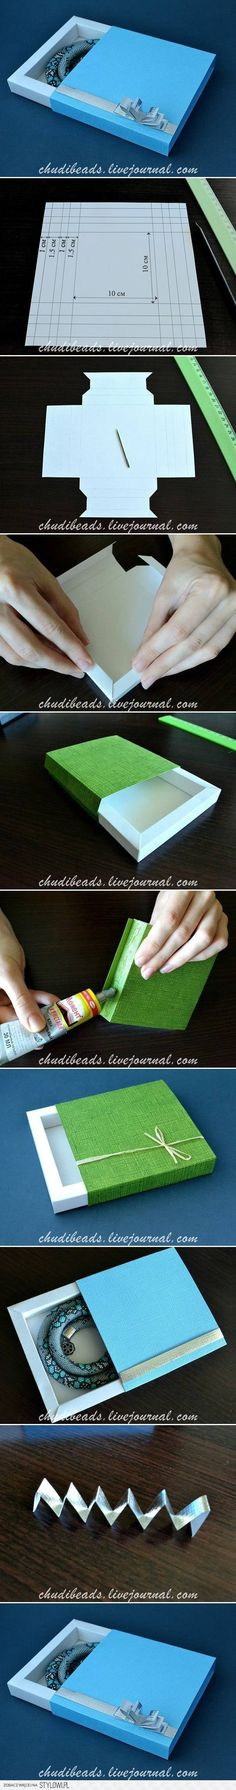 DIY Square Gift Box DIY Projects | UsefulDIY.com na Stylowi.pl